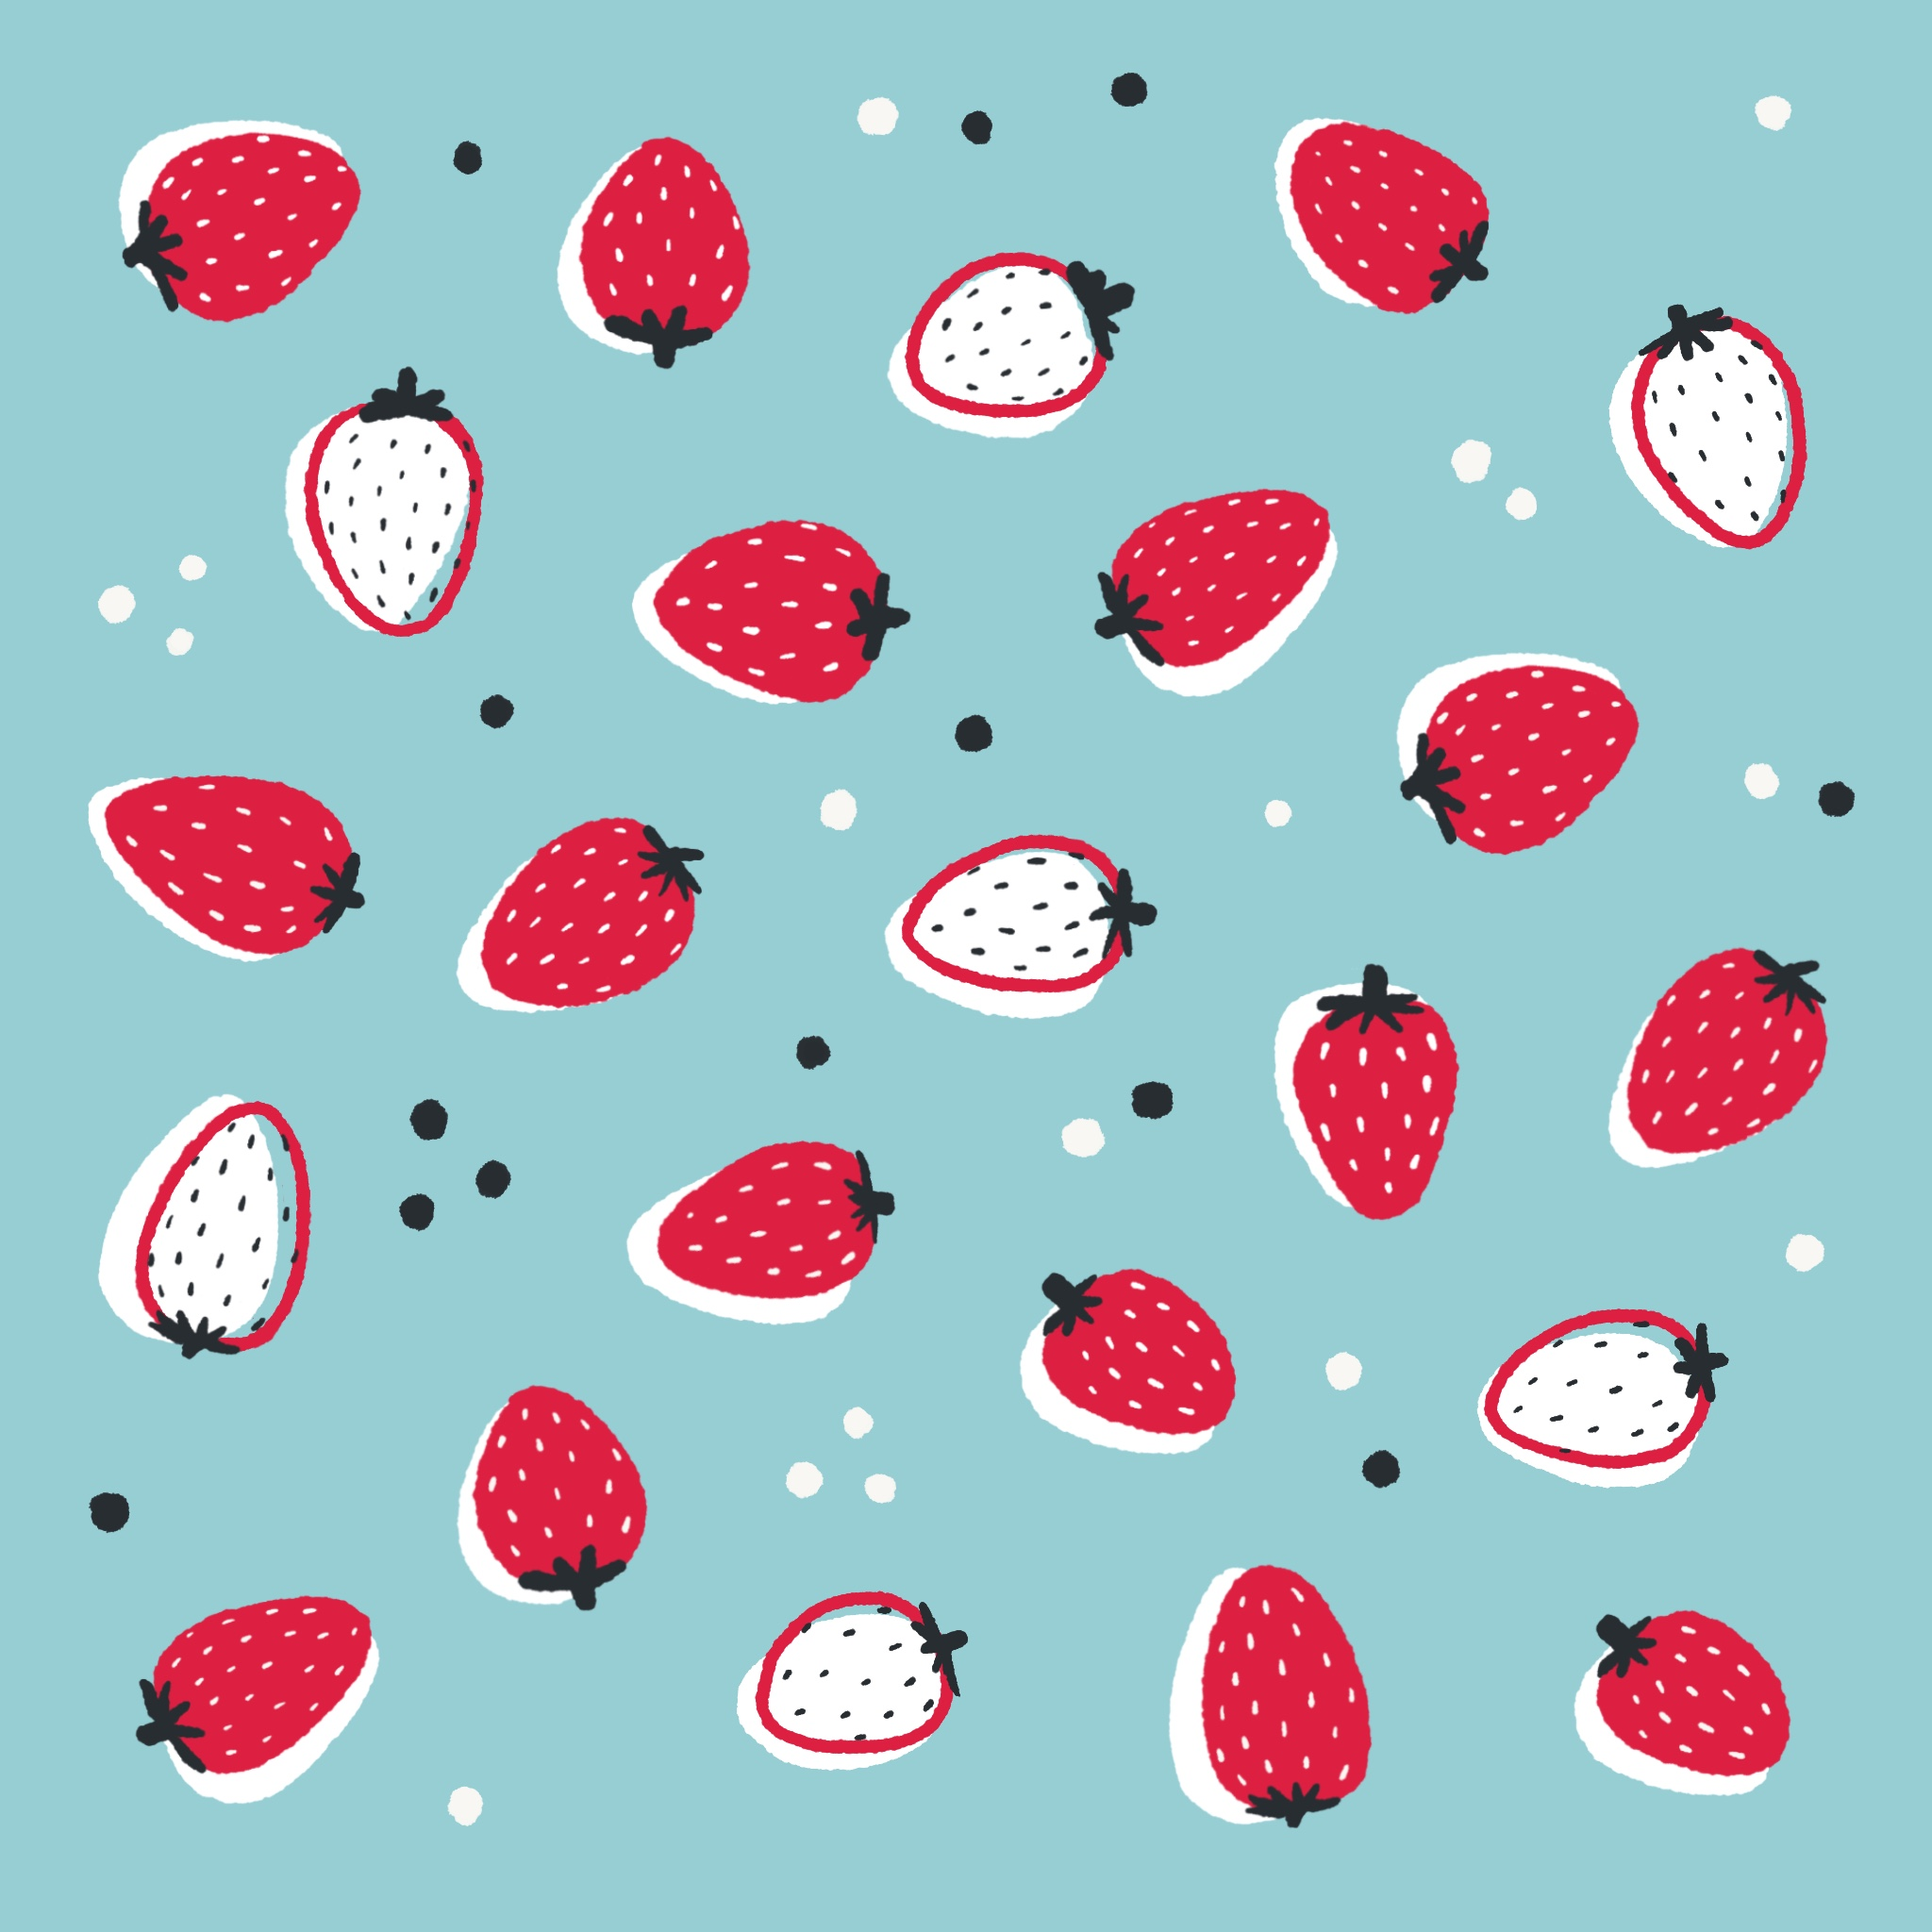 An illustrated pattern of strawberries